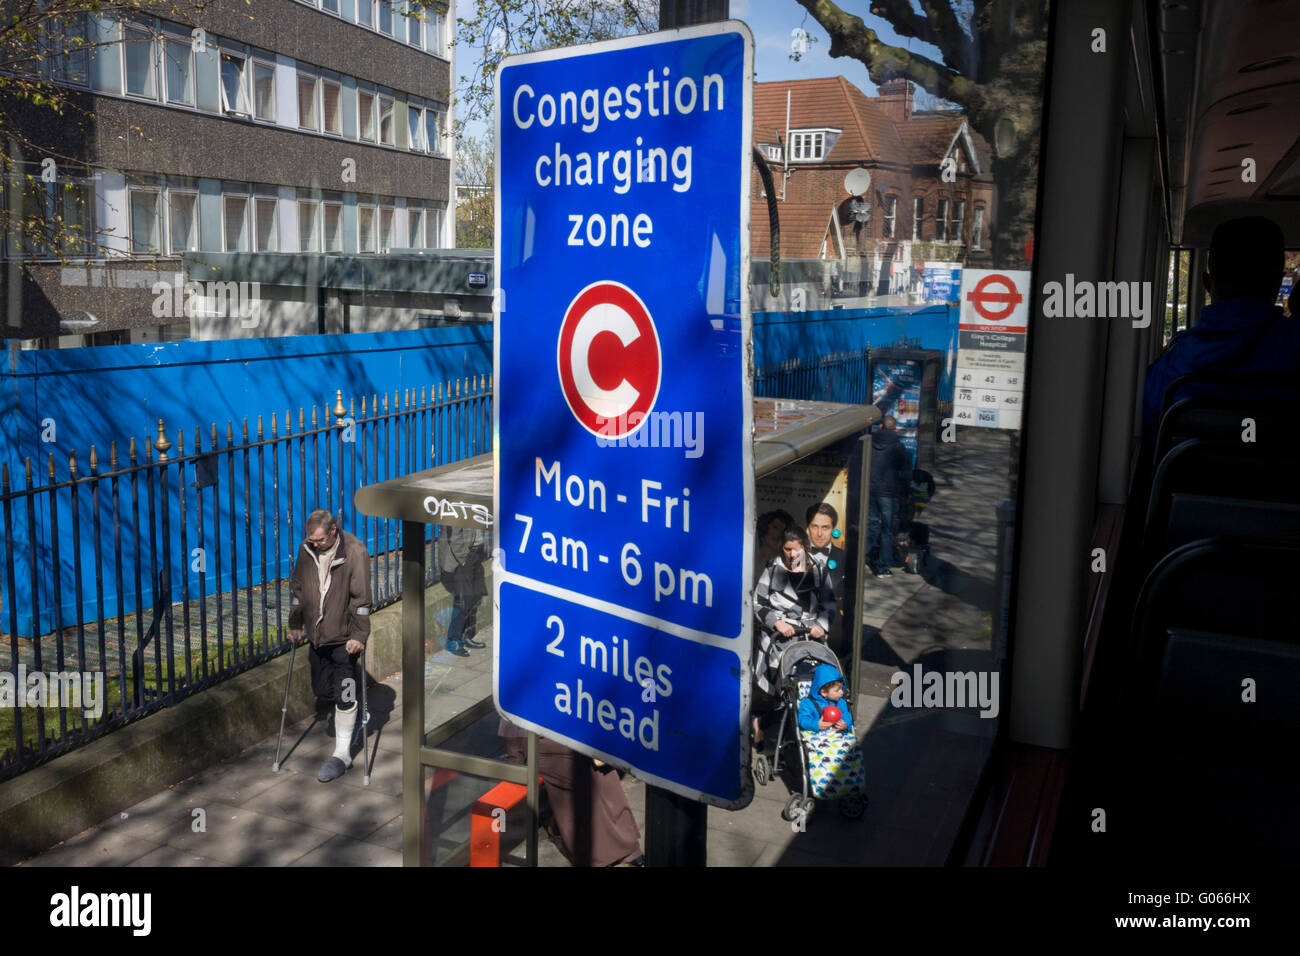 Aerial view of a bus stop and TFL Congestion Charging Zone sign, seen from the top deck of a London bus, outside - Stock Image